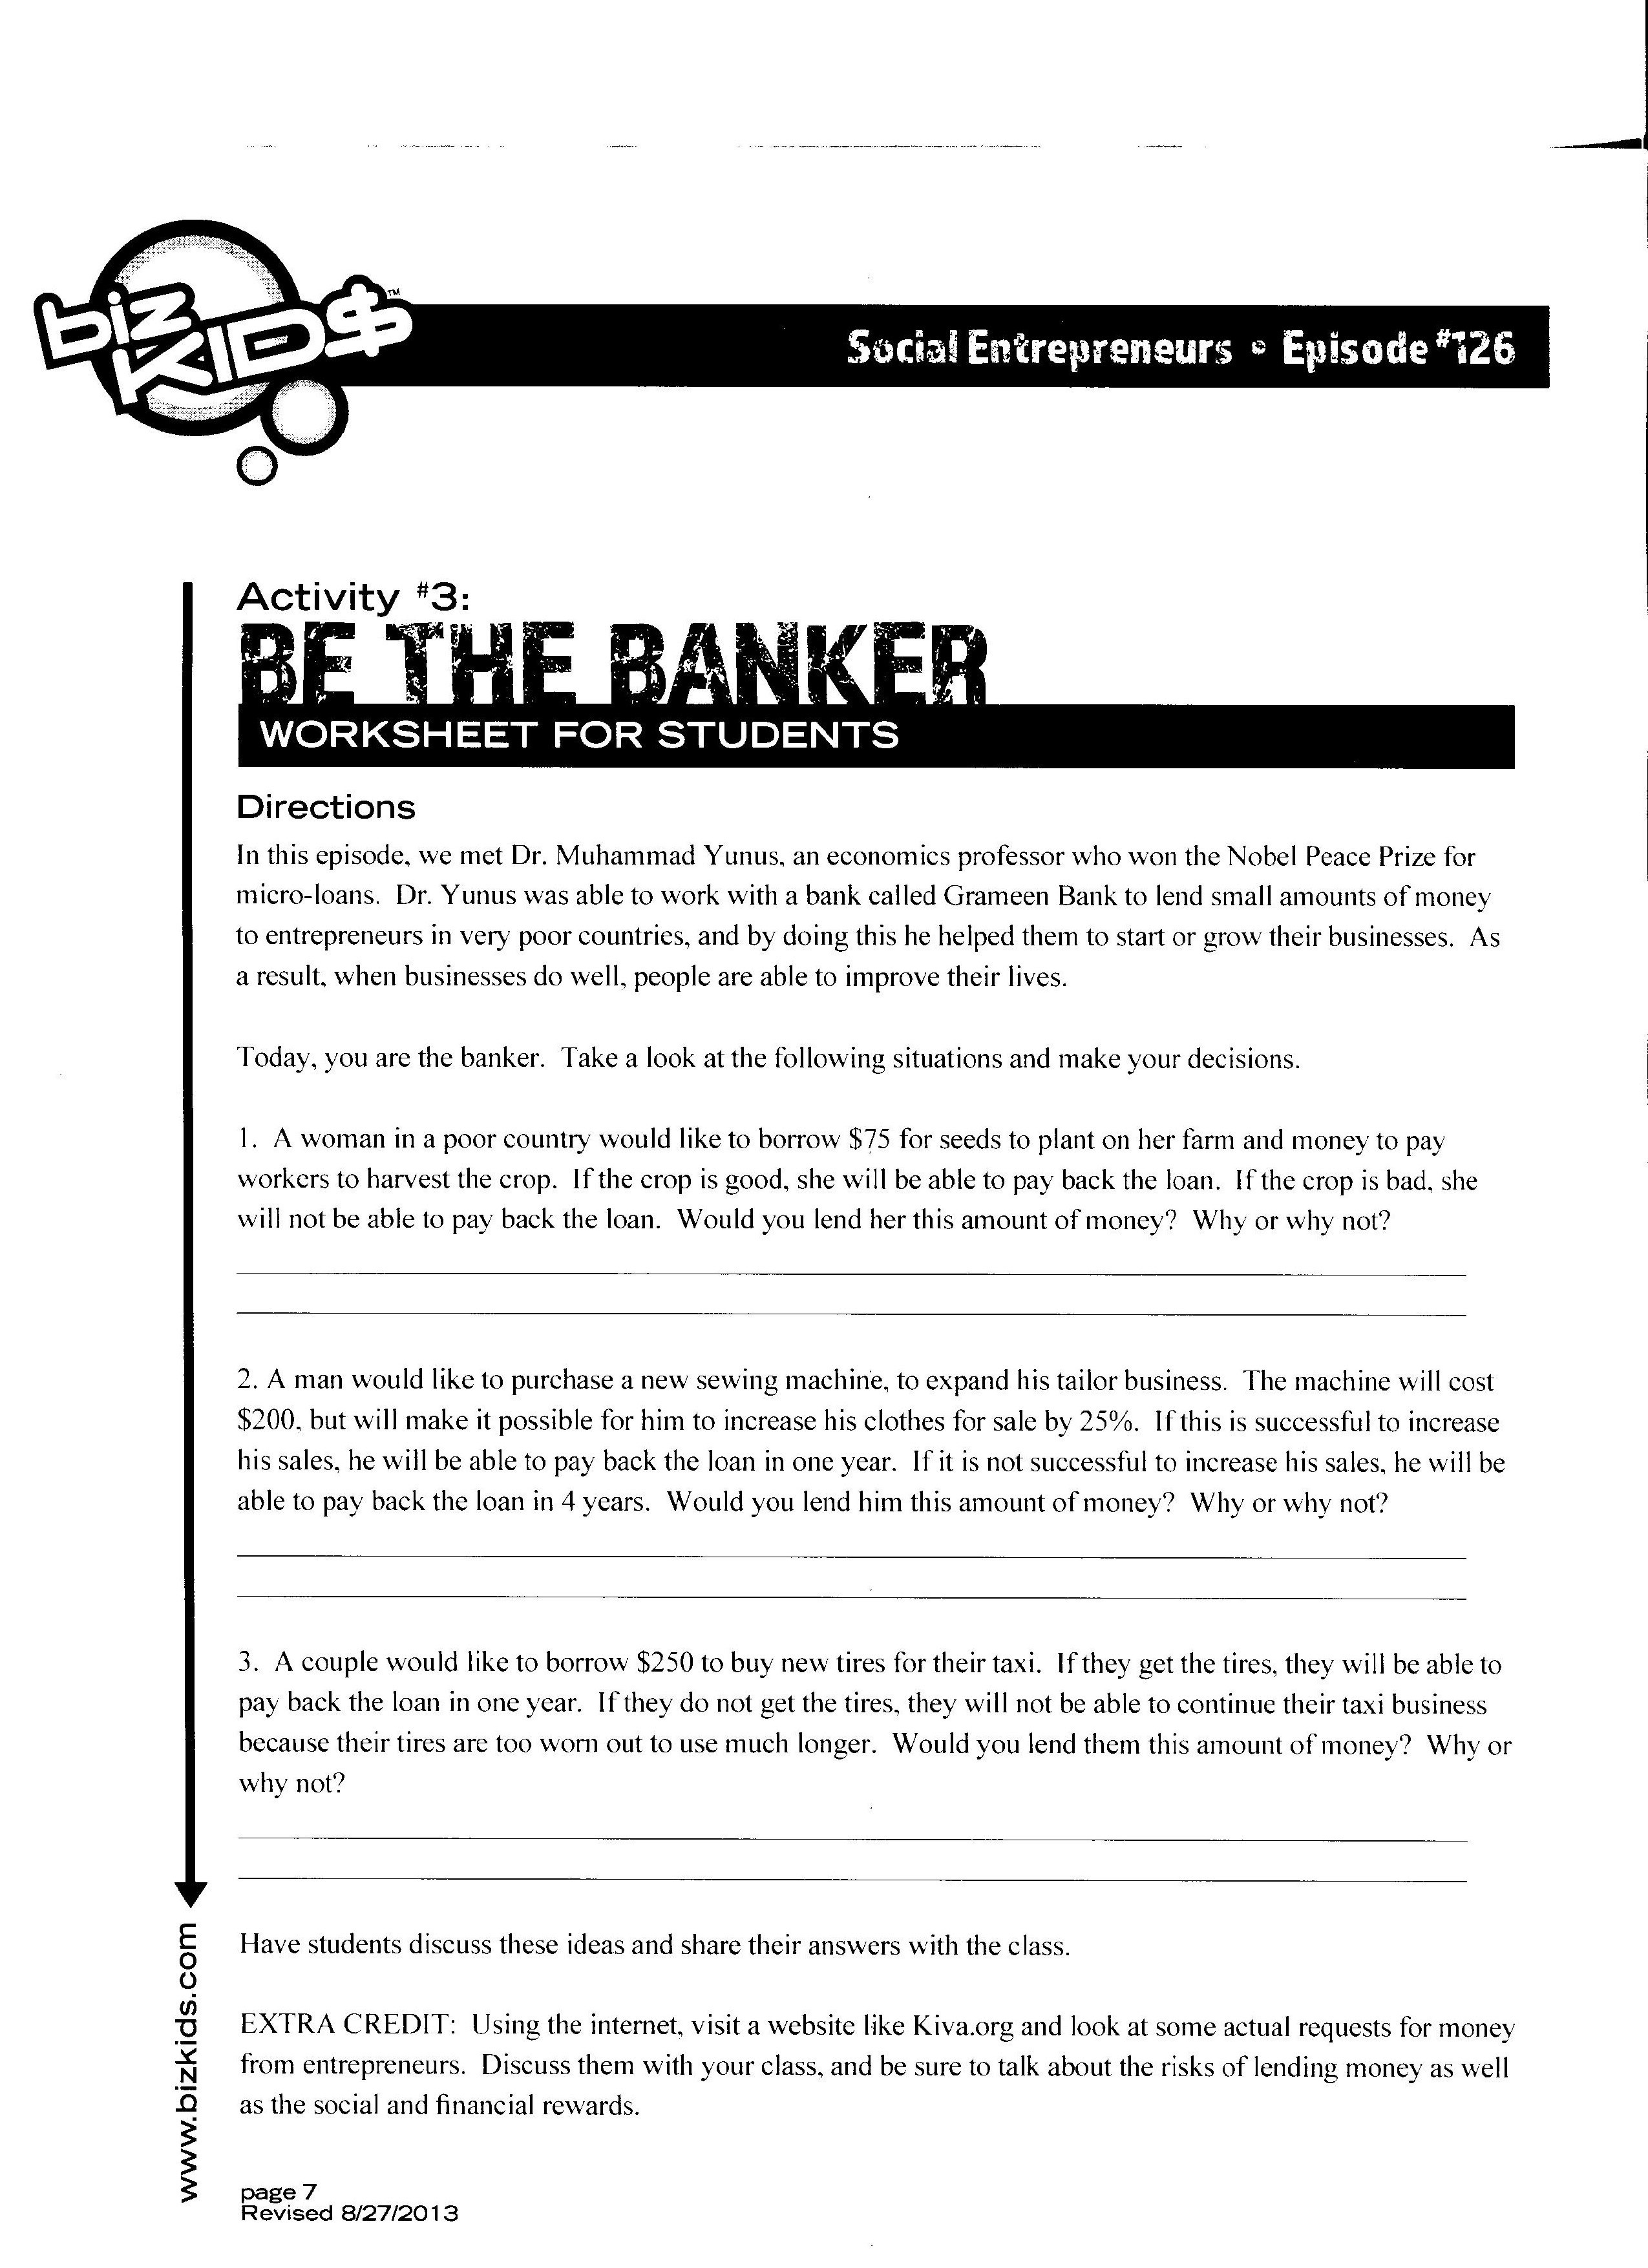 Financial worksheets for highschool students